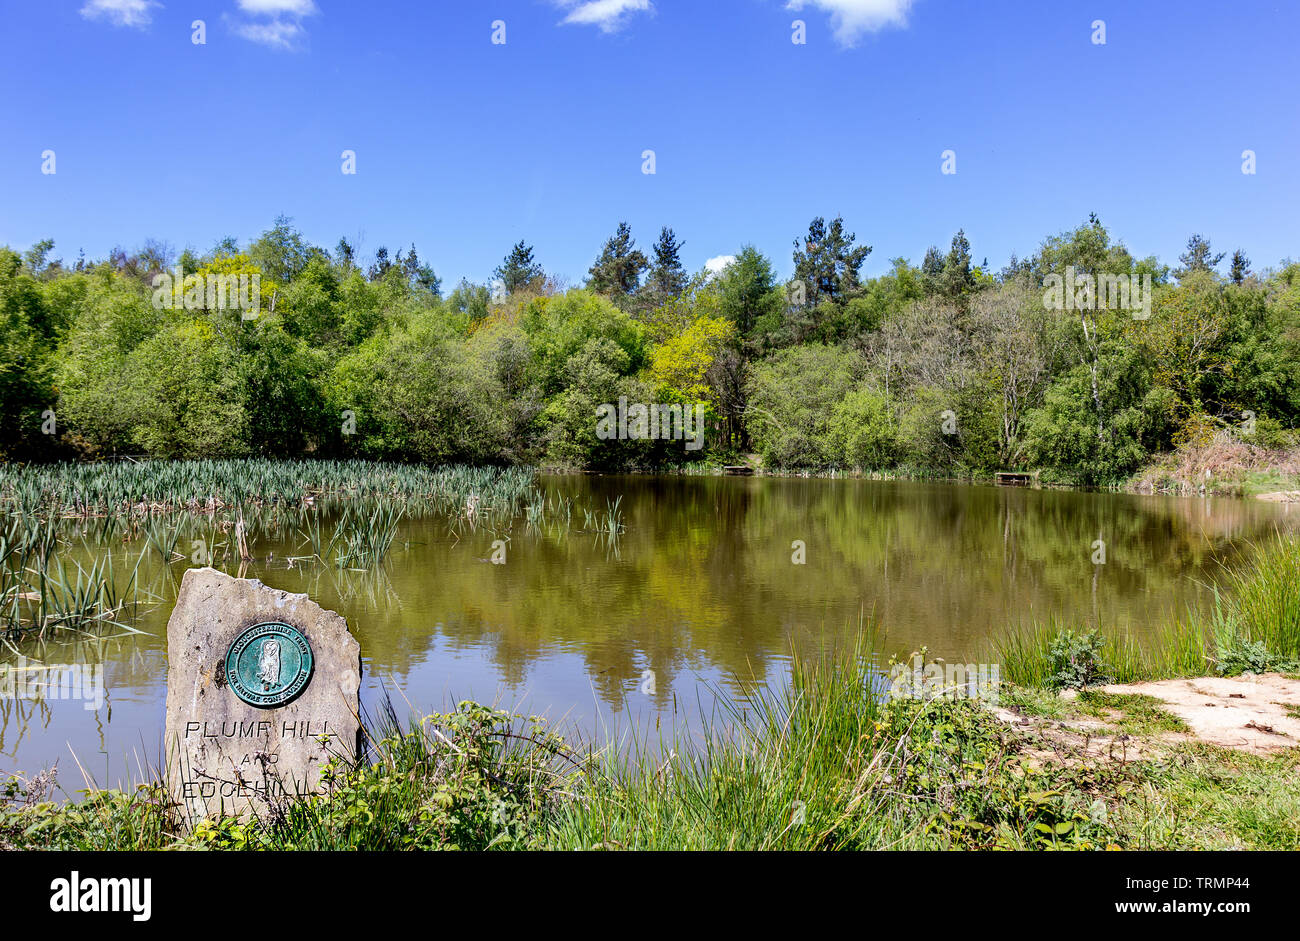 Pond on Plump Hill. - Stock Image